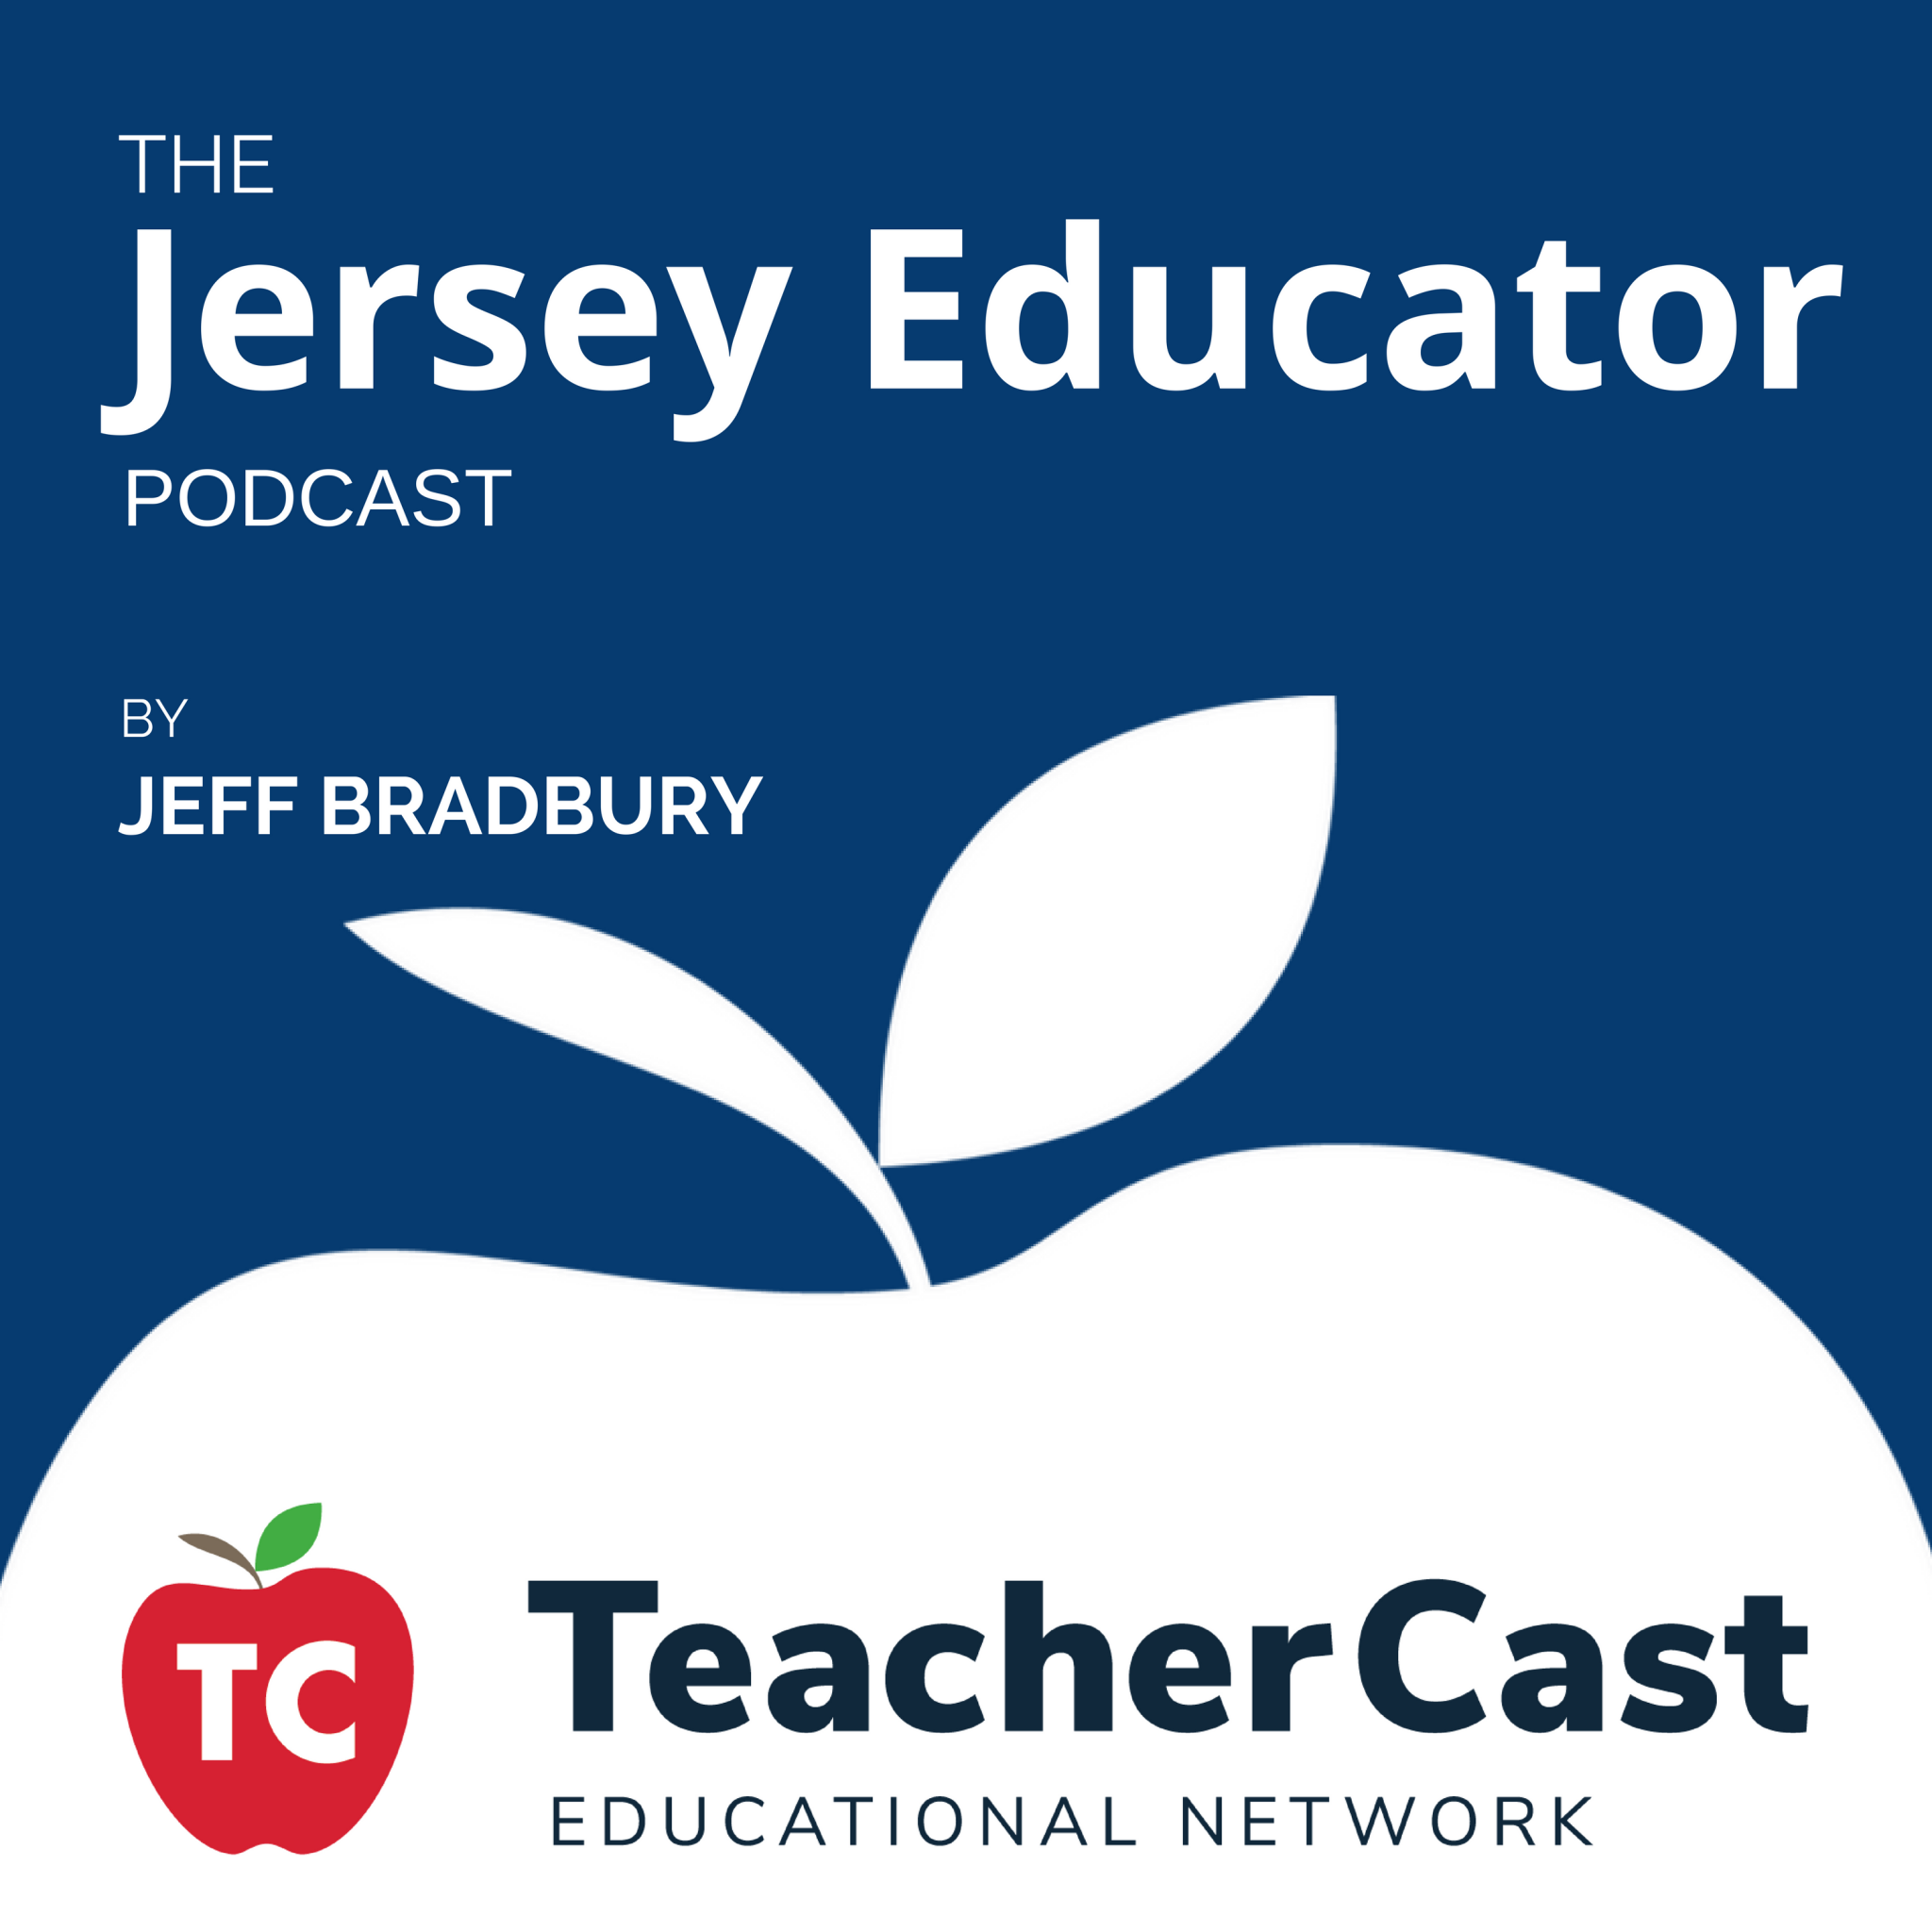 The Jersey Educator Podcast